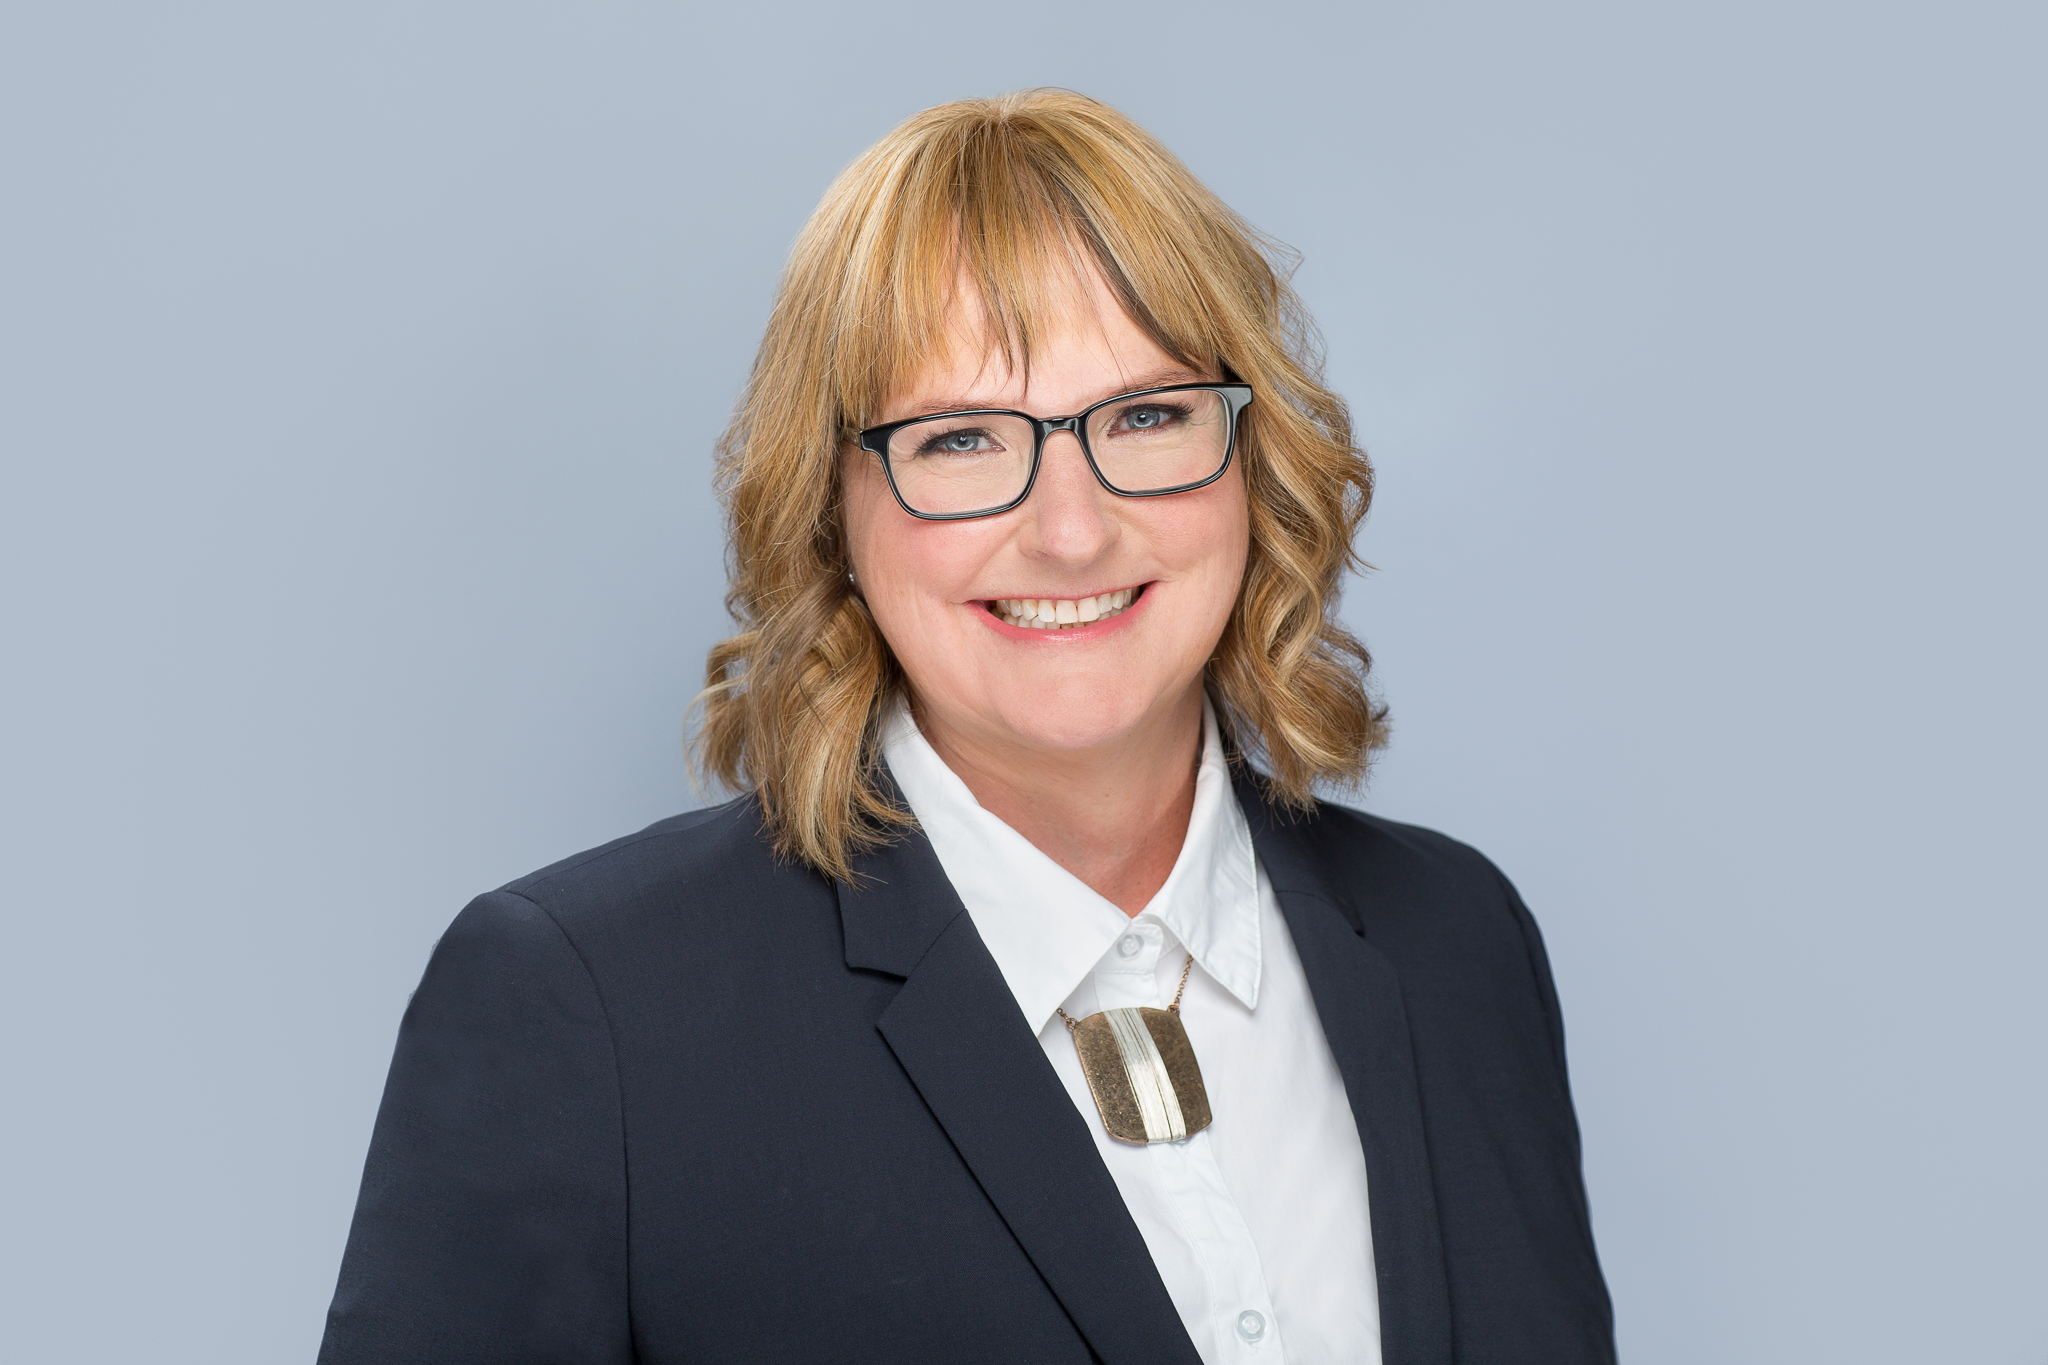 A corporate style headshot with a bright, fresh look